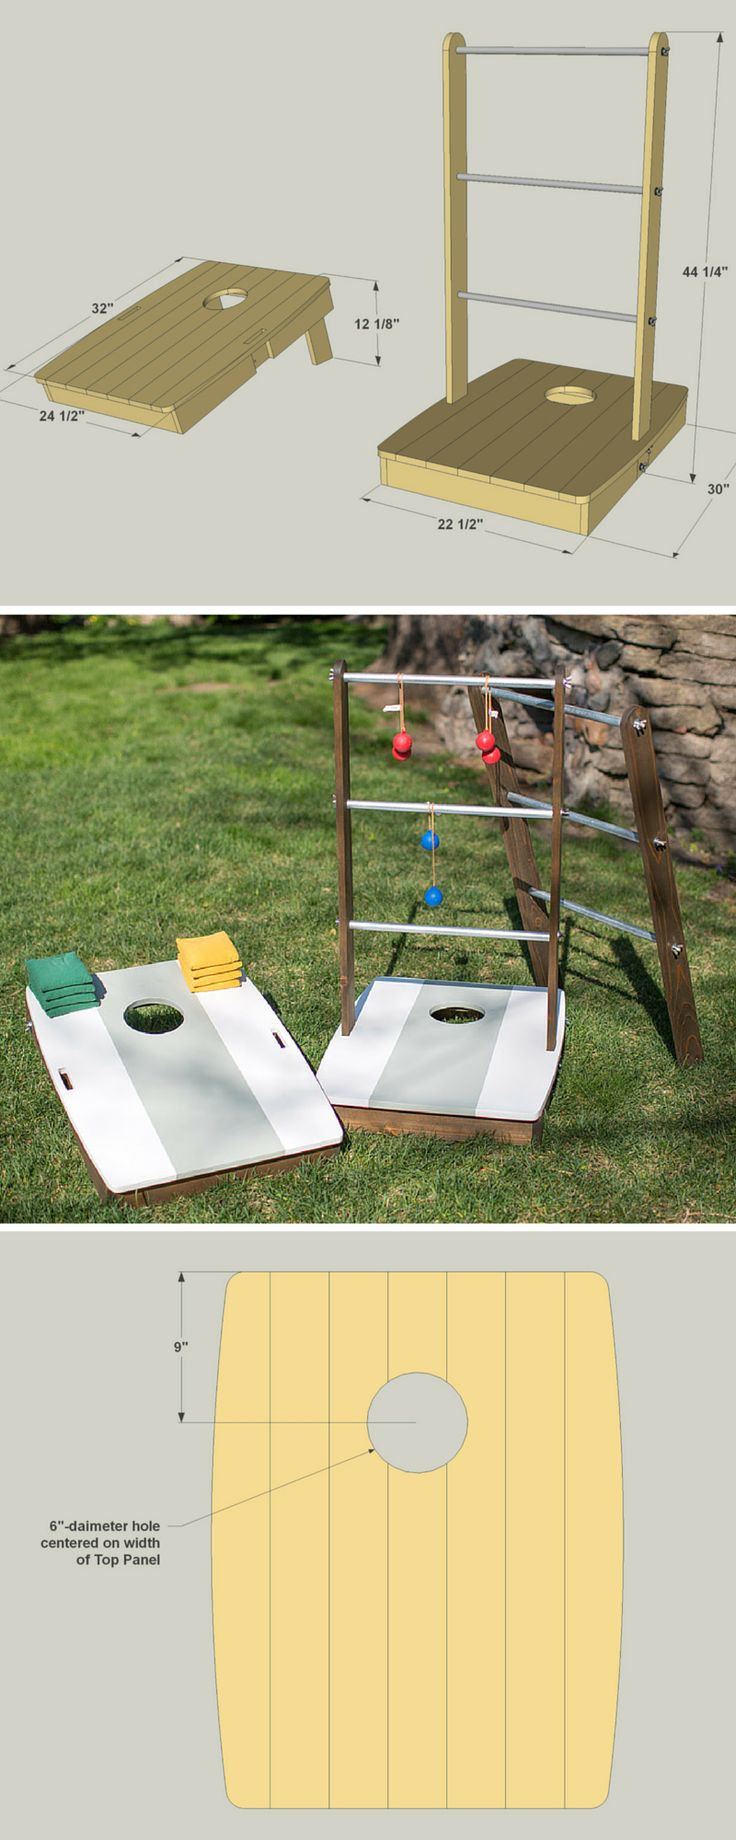 How to build a DIY 2-in-1 Outdoor Games | Free printable project plans with how-to steps, tools and materials list, cutting list and diagram. | Add some fun to your outdoor living with this clever combination of two popular outdoor games. With the uprights installed, you can play ladder ball. Remove the uprights and flip down the legs, and you're ready for the fun of bean-bag toss!